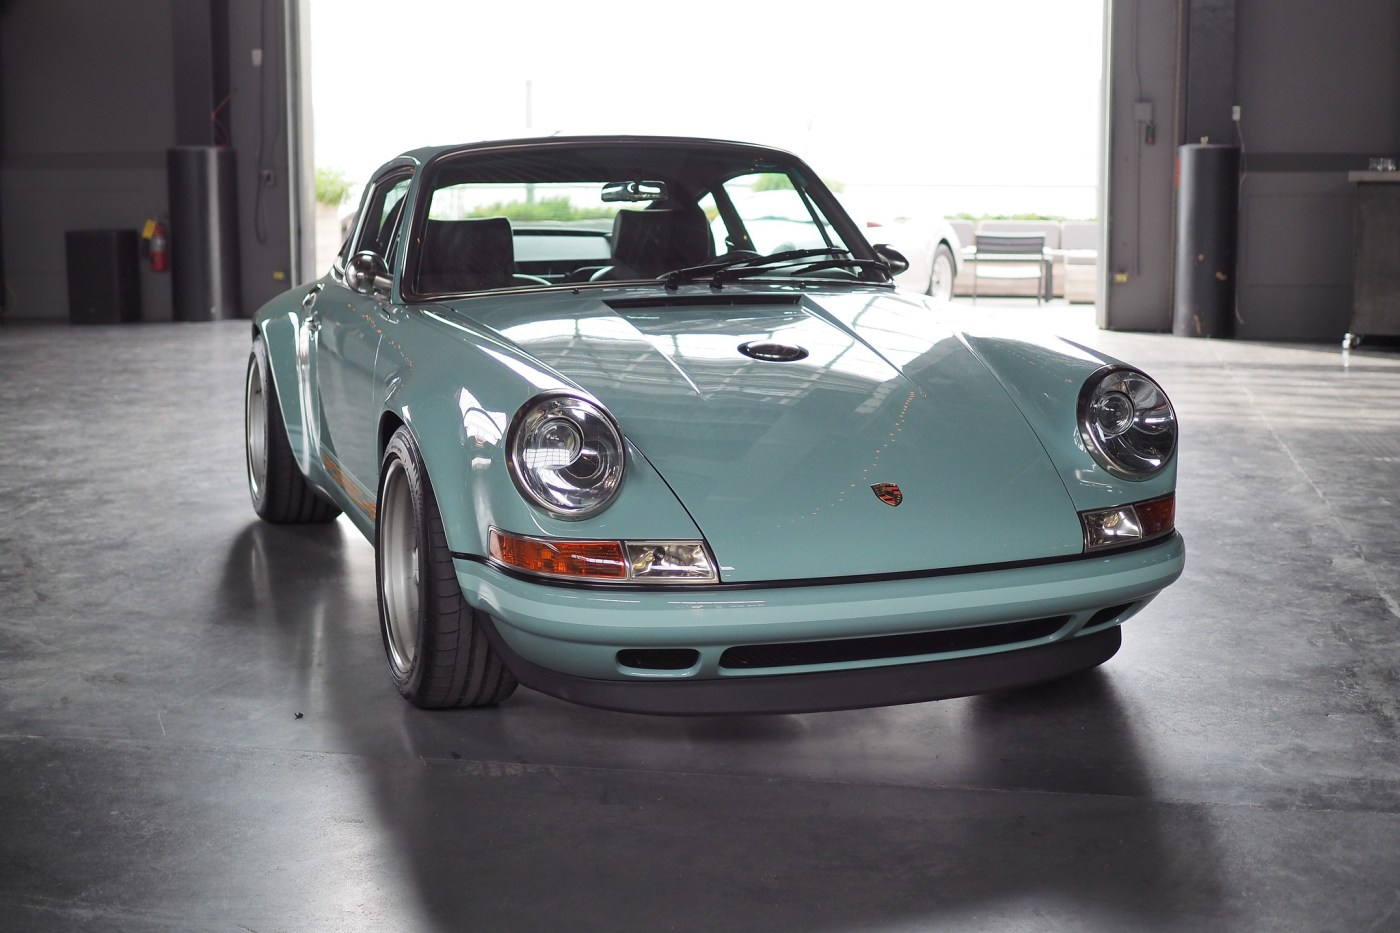 Singer Porsche 911 at Classic Car Club of Manhattan